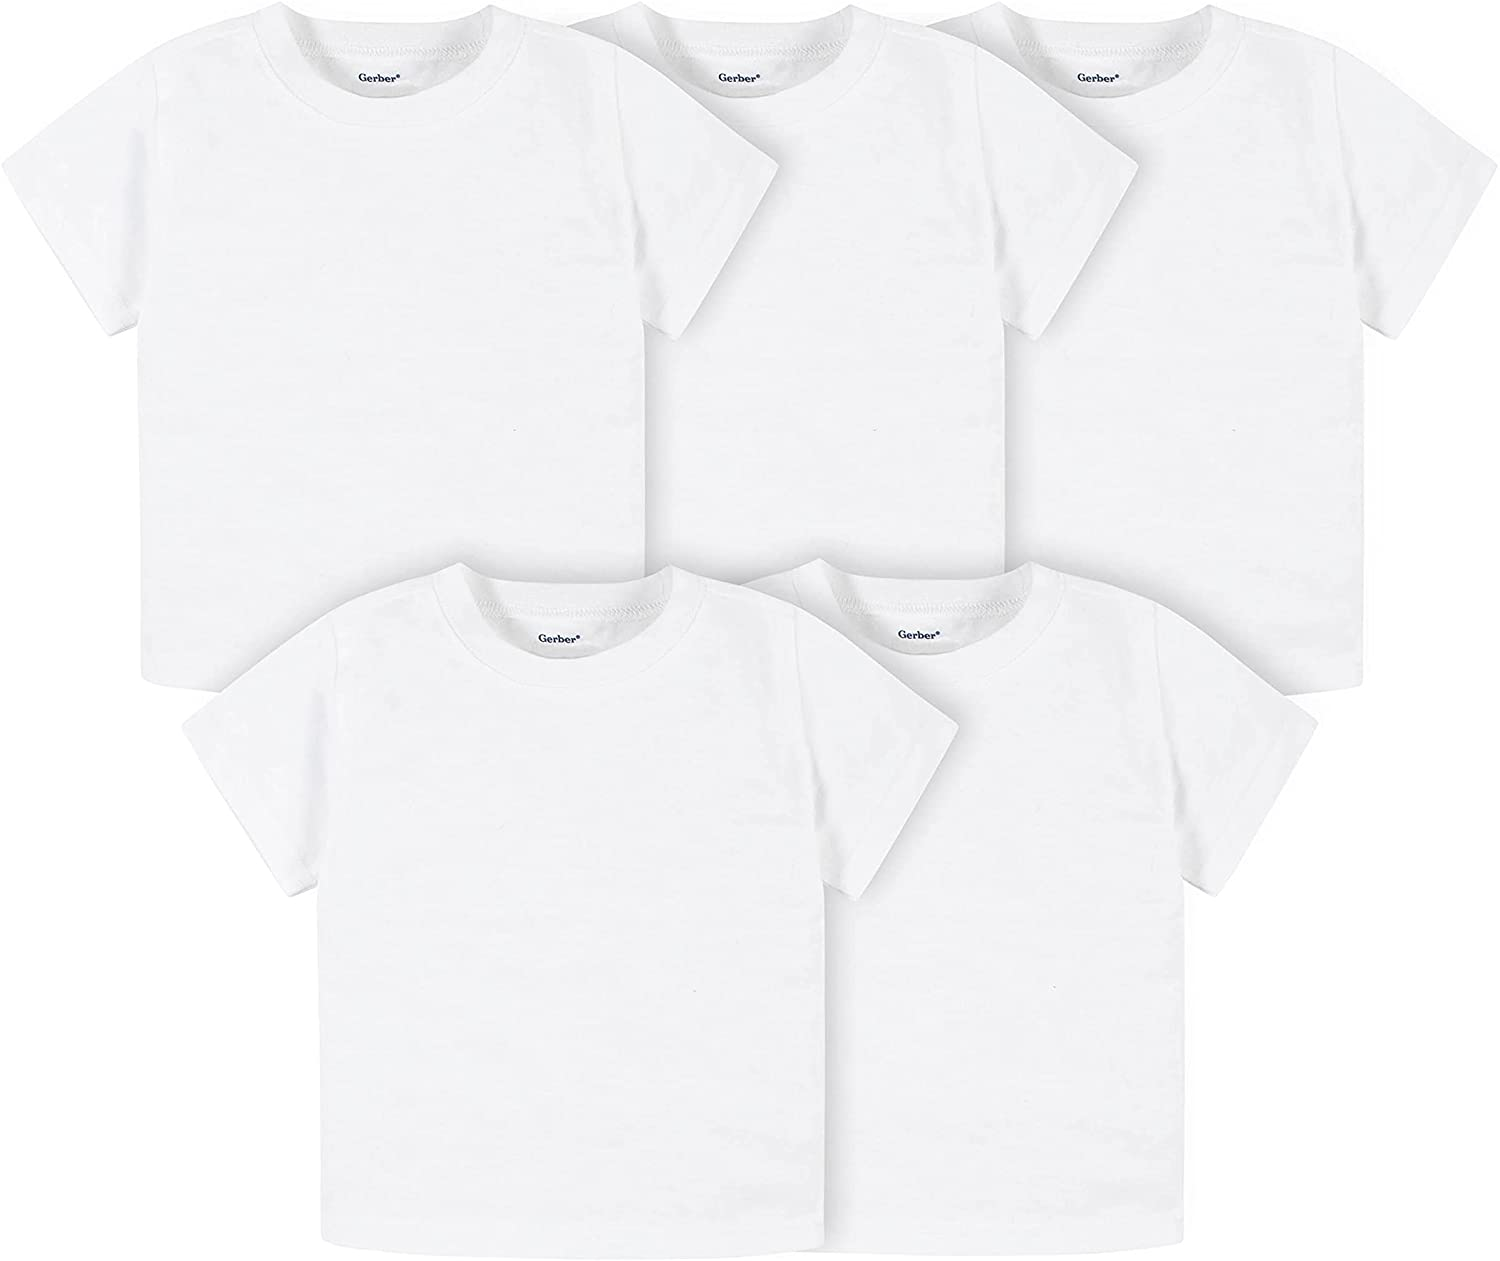 Gerber unisex-baby Toddler 5-pack Solid Short Sleeve T-shirts Jersey 160 Gsm